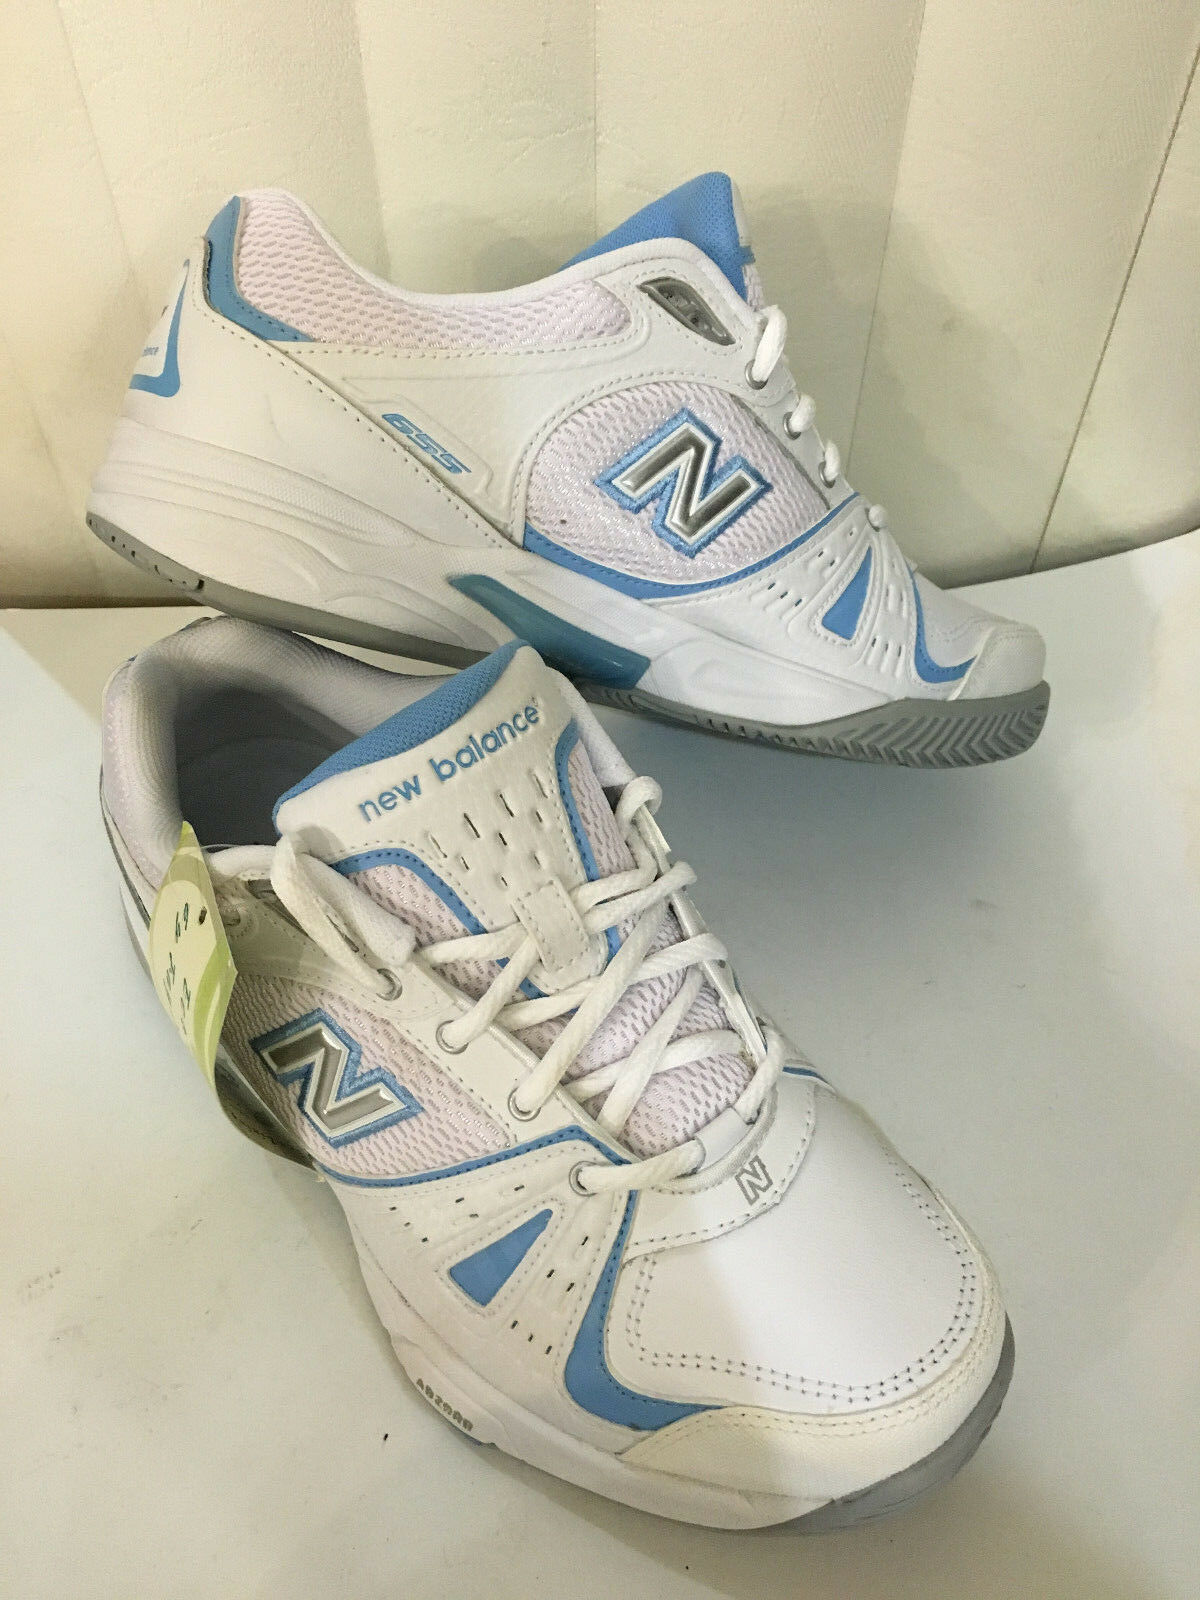 New Balance WC655WT  Women's White bluee Running shoes Size 6-9 D (Wide)